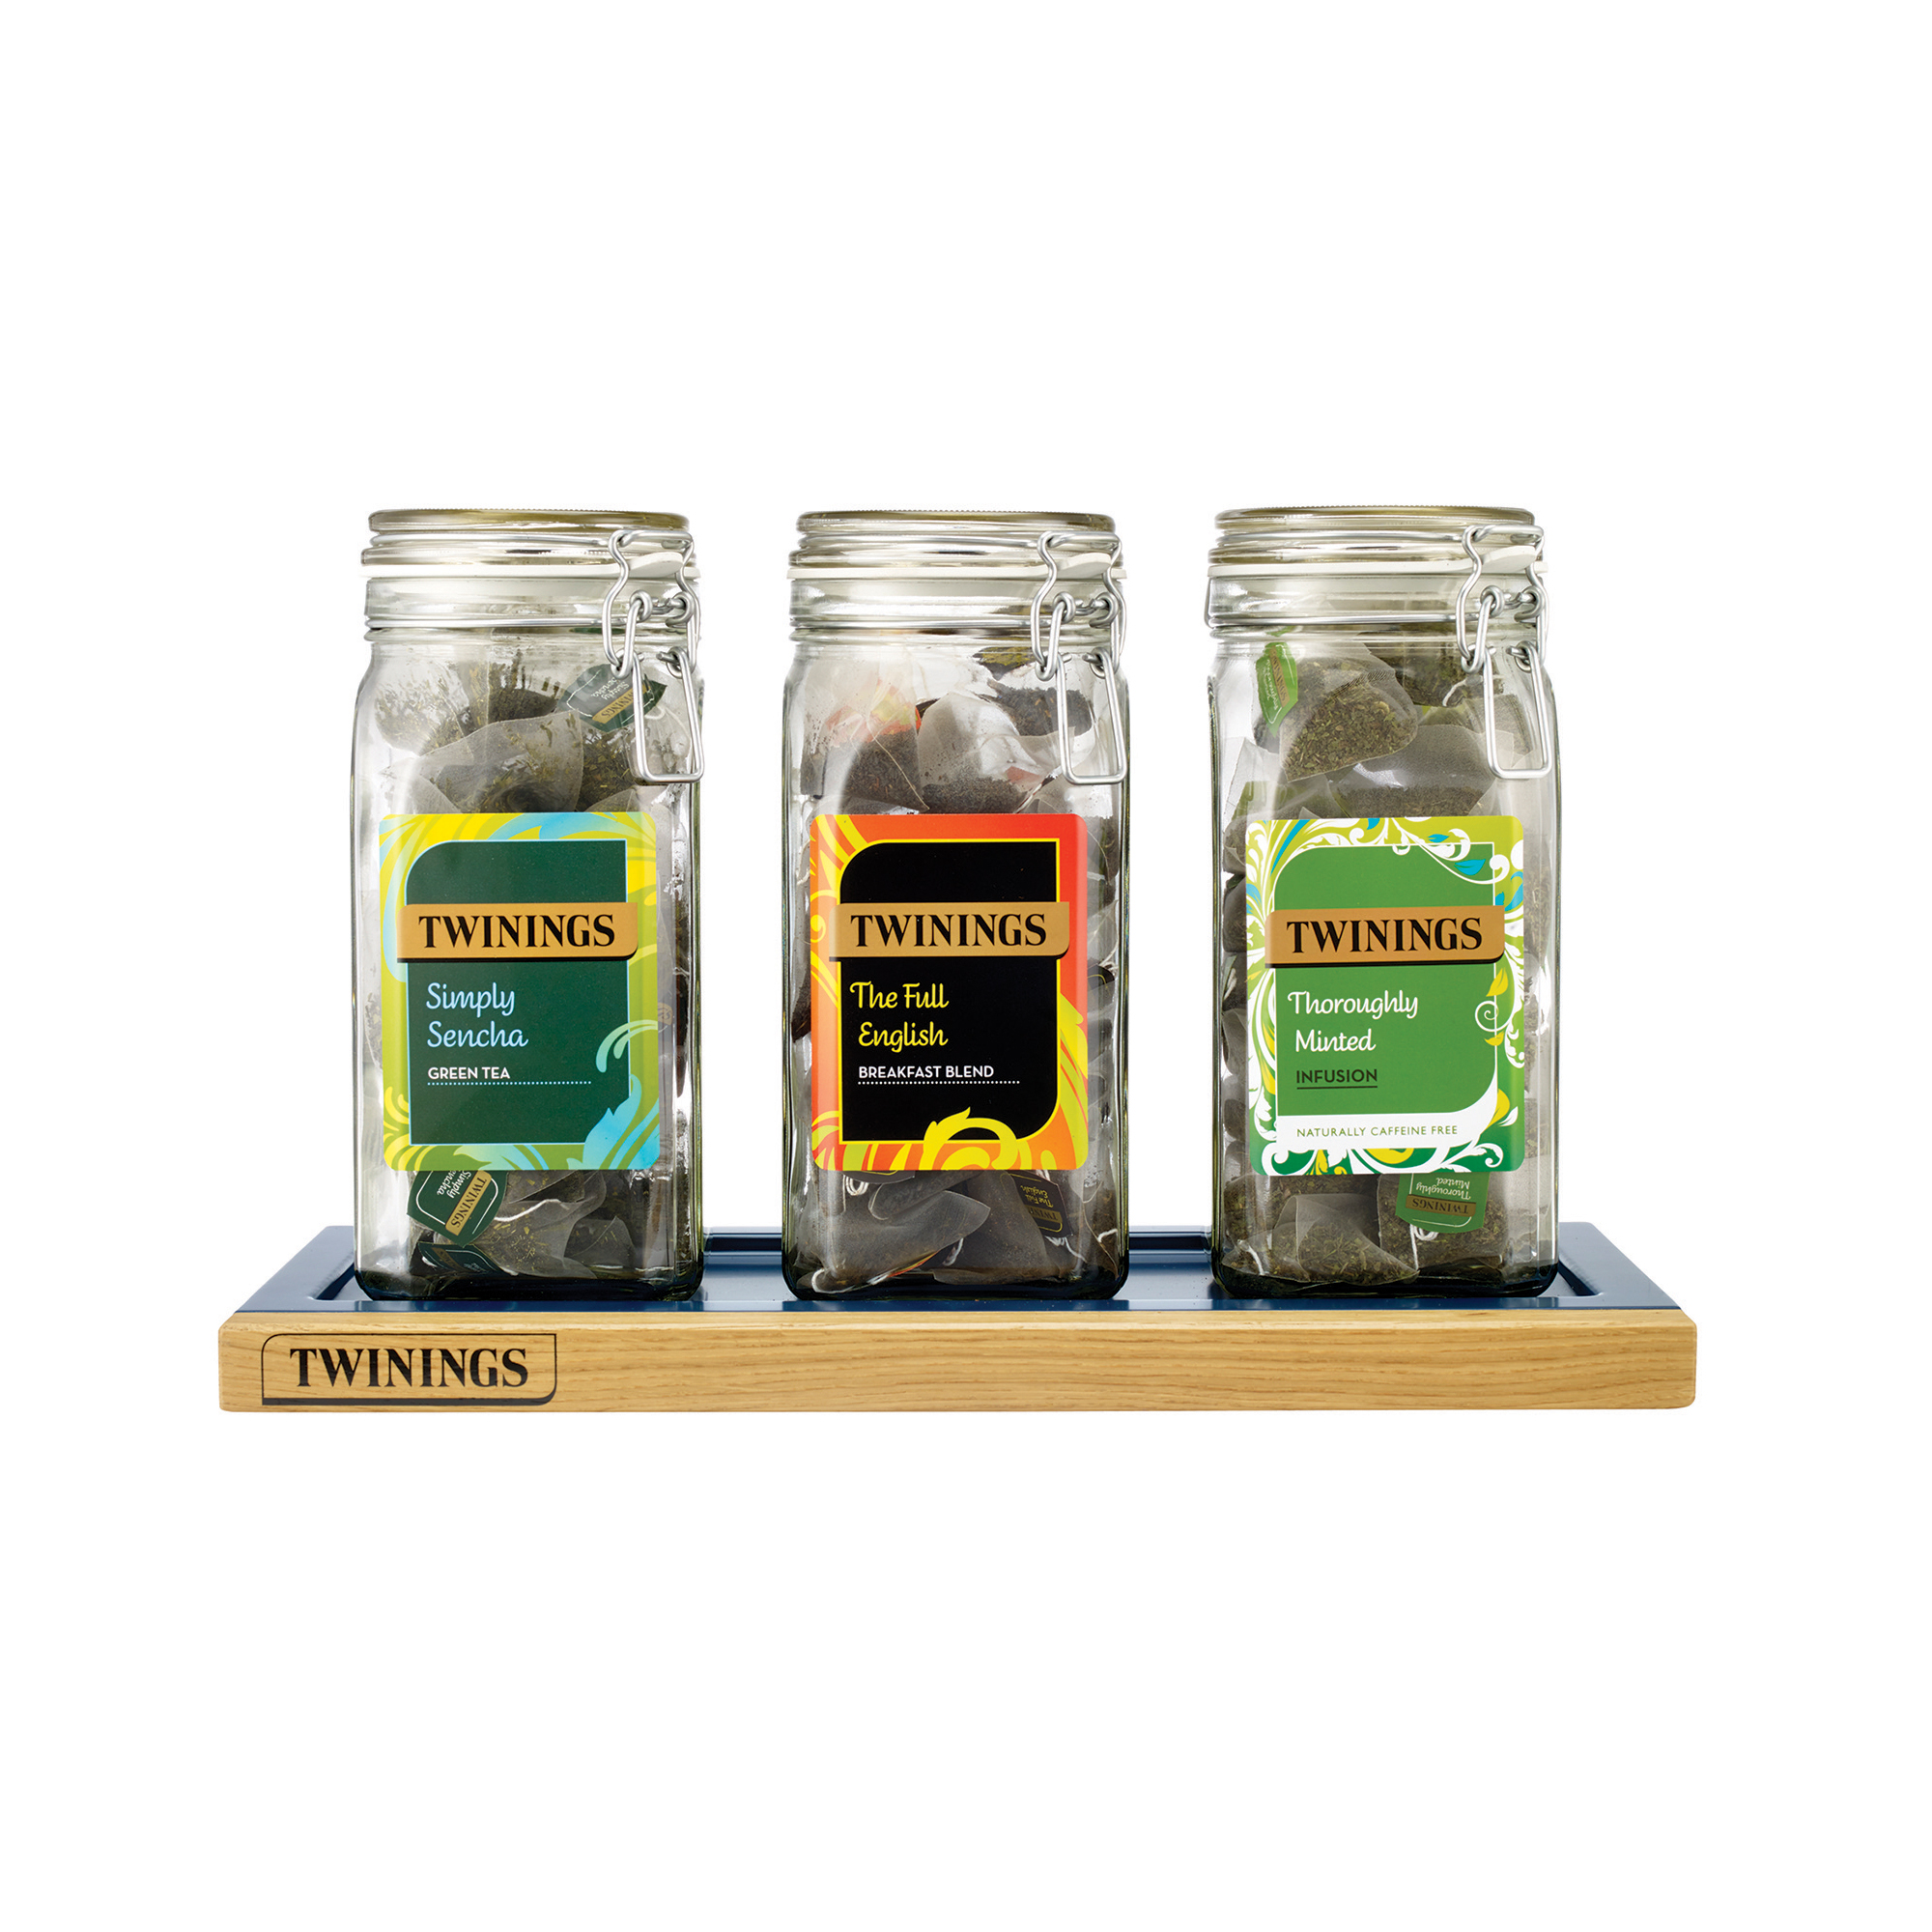 Tea / Coffee / Sugar Storage Twinings Kilner Jars Set of 3 and Tray